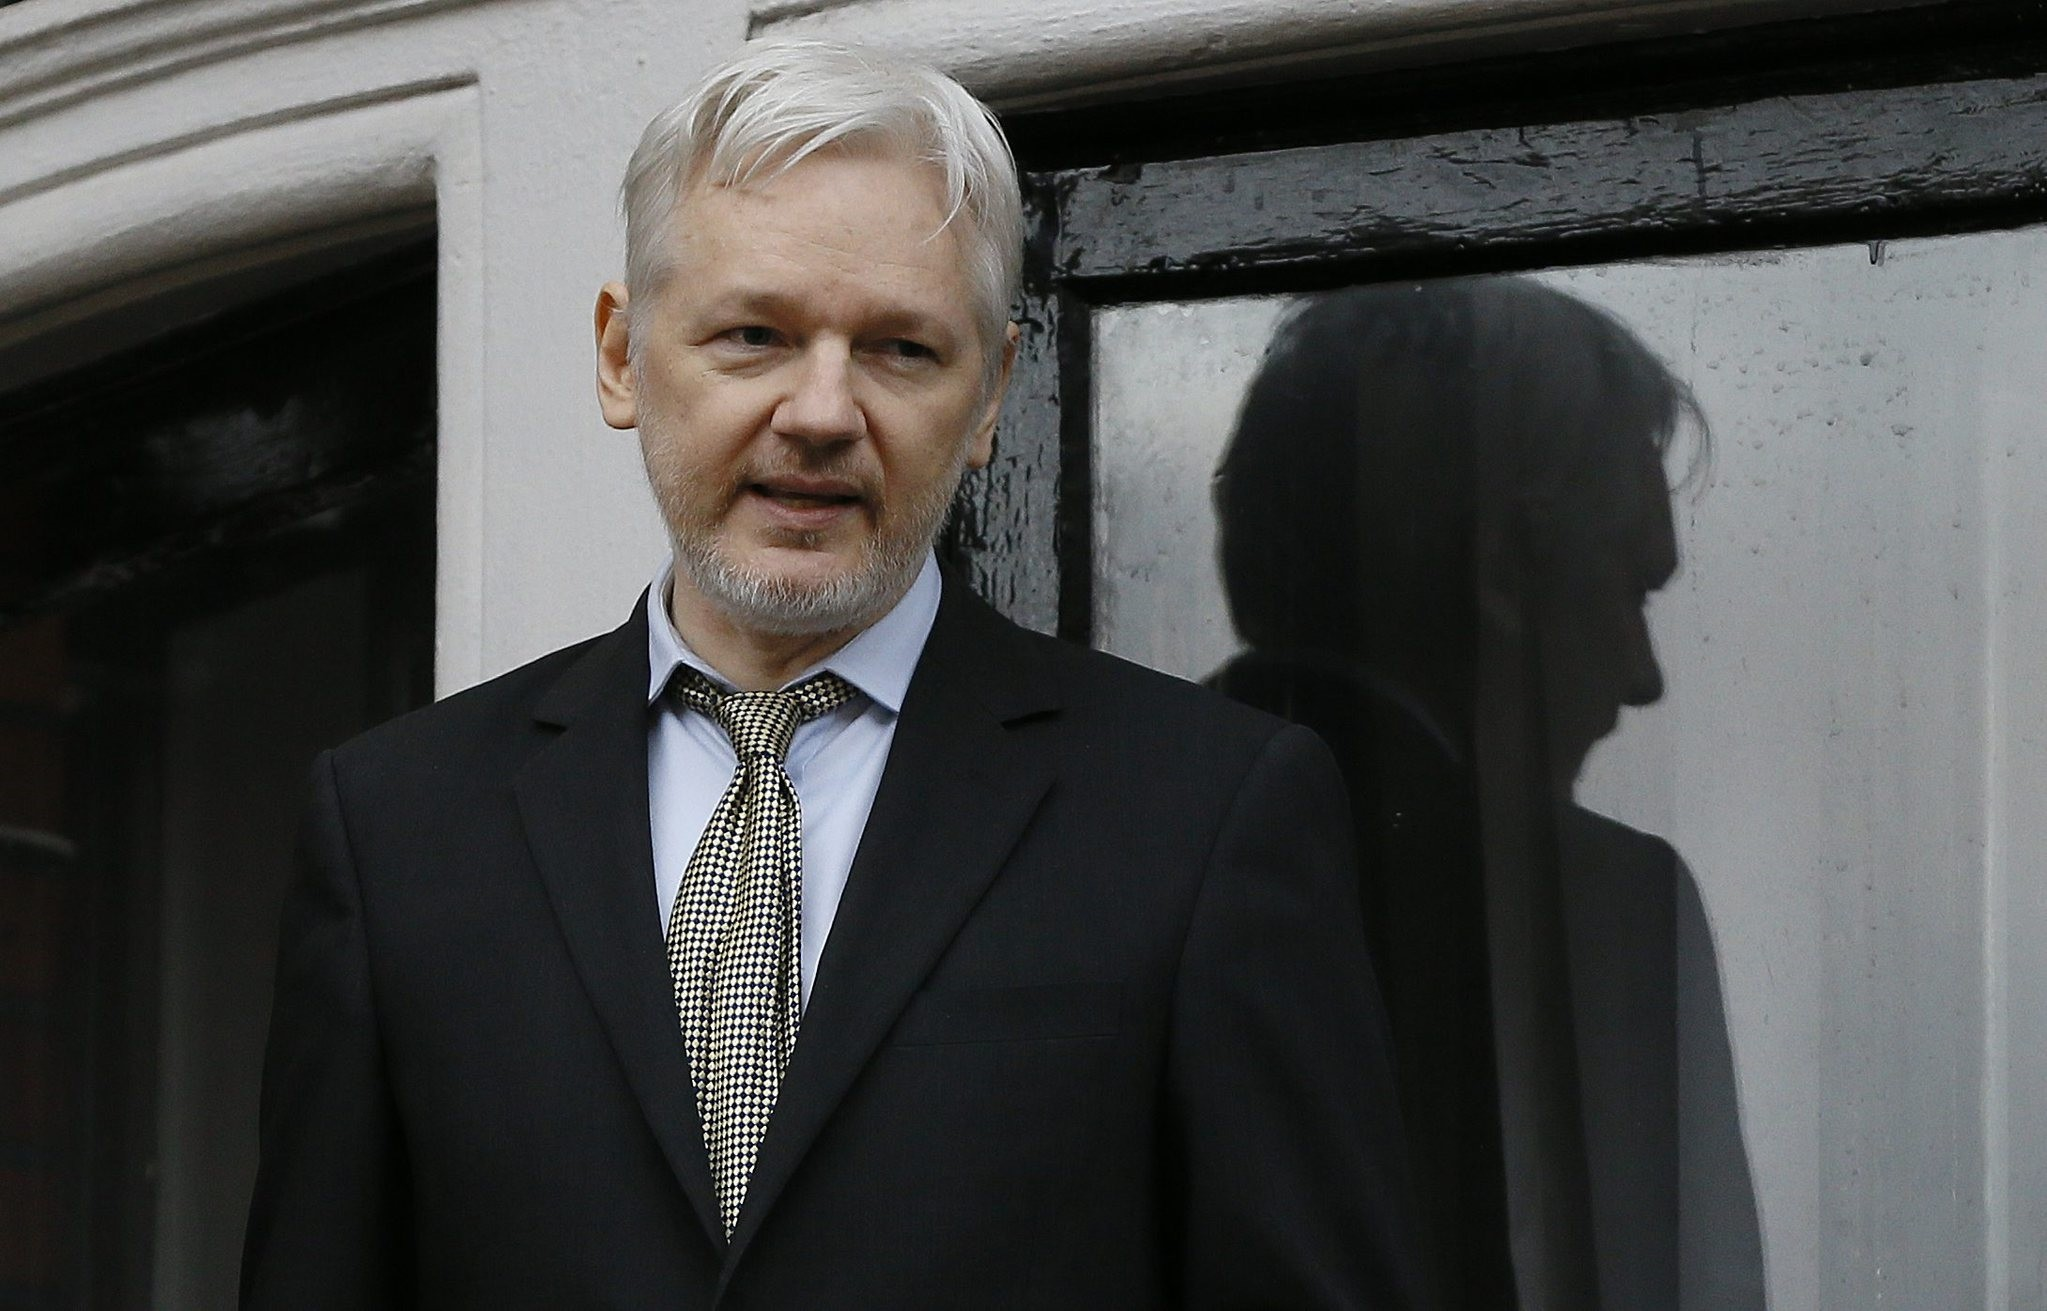 In this Feb. 5, 2016 file photo, WikiLeaks founder Julian Assange speaks from the balcony of the Ecuadorean Embassy in London. (AP Photo)